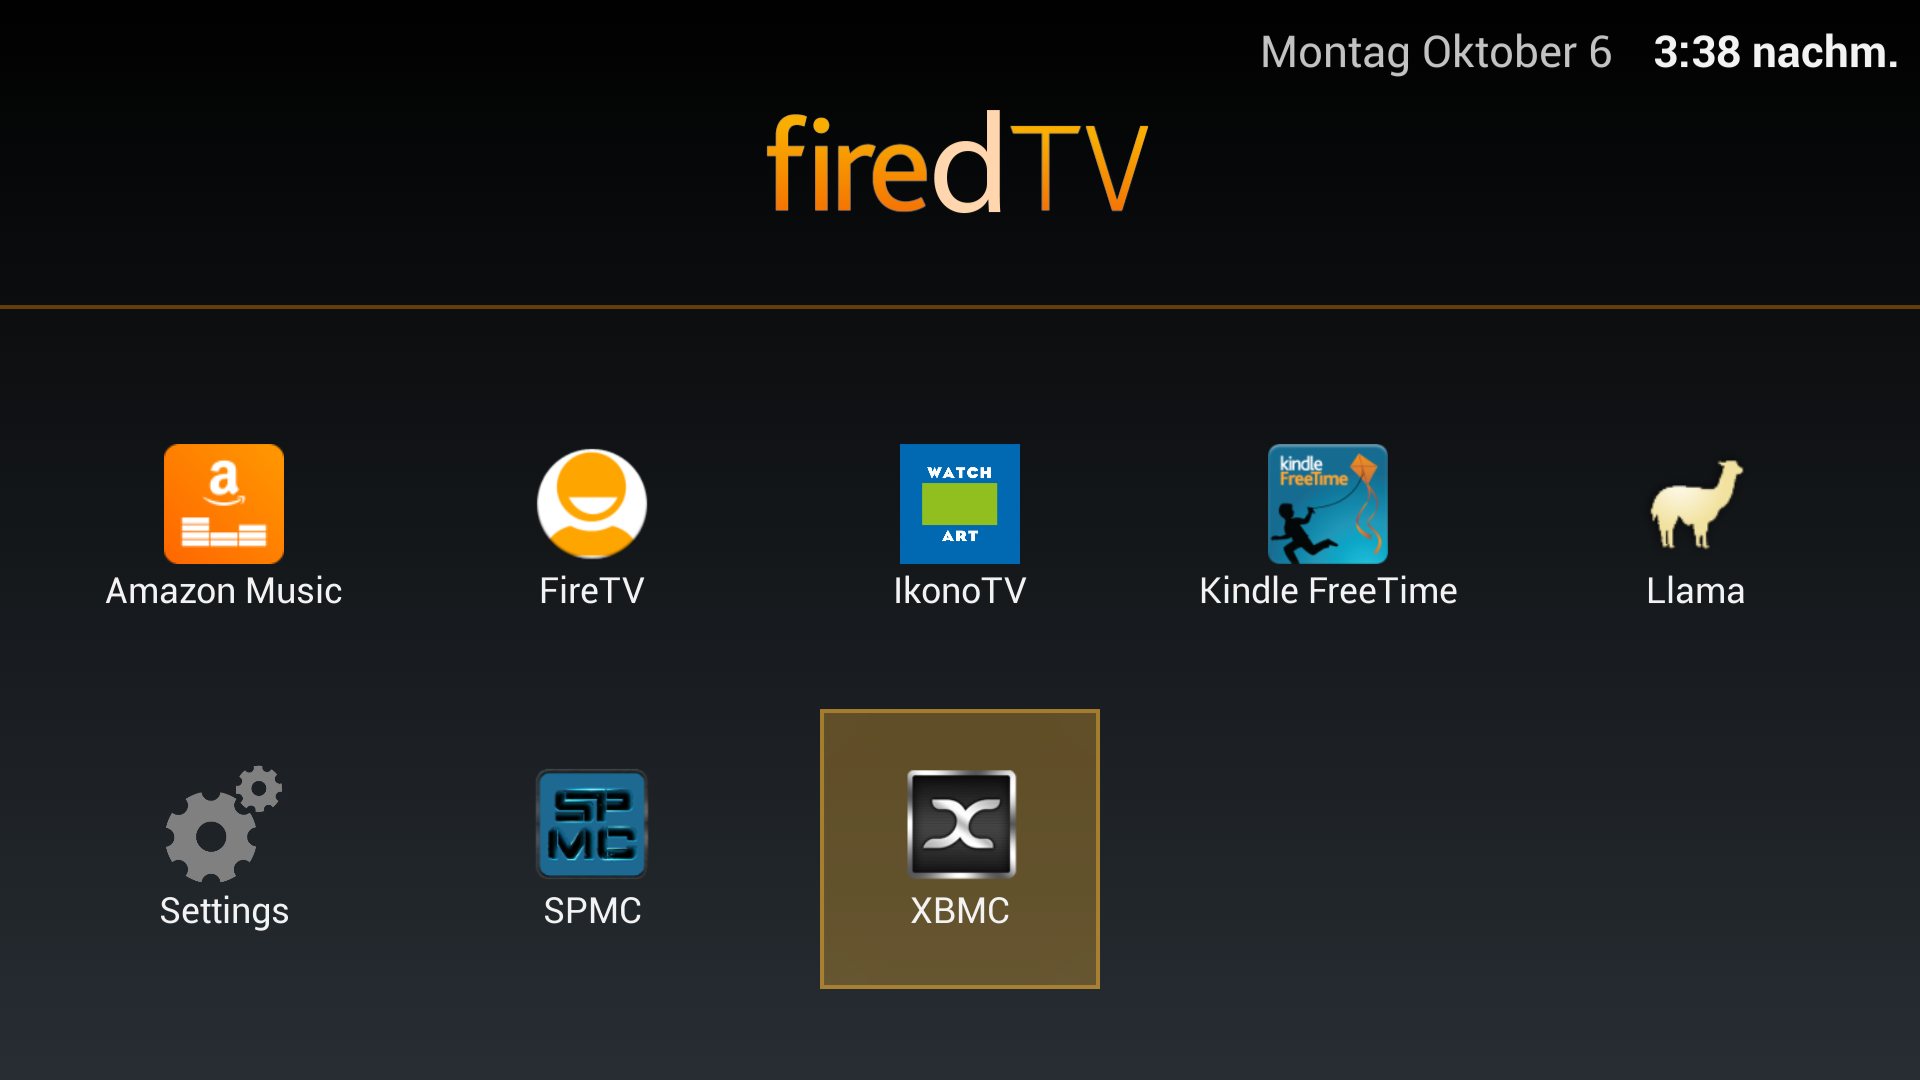 Workshop: Amazons Fire TV wird zur Multimedia-Zentrale -